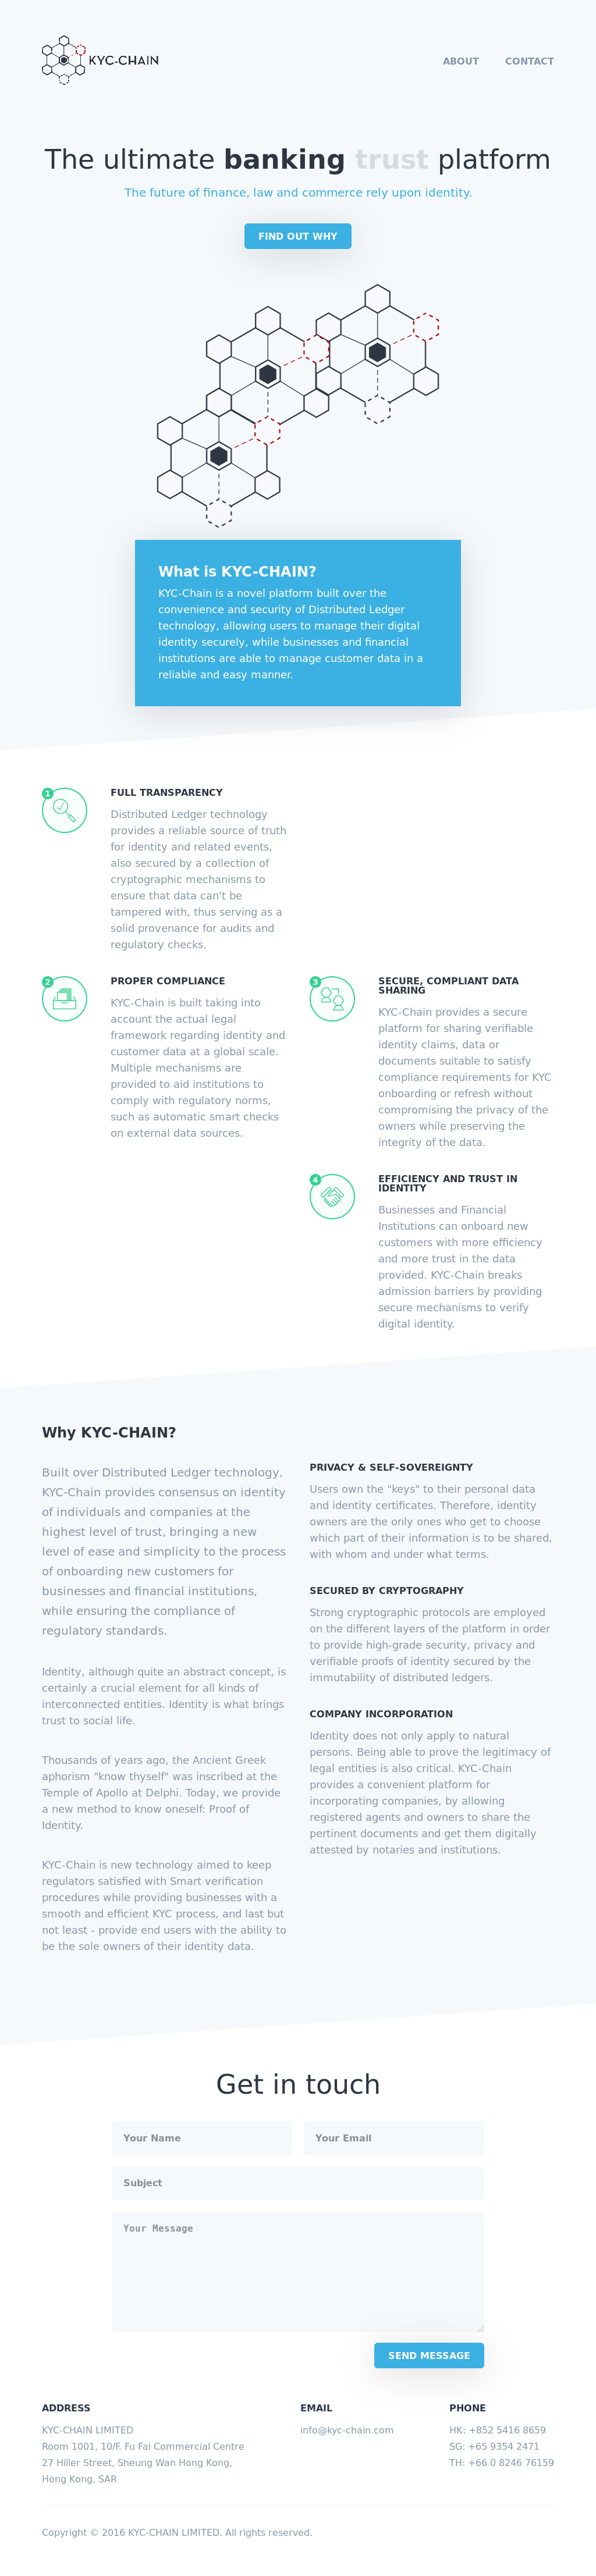 KYC-Chain Competitors, Revenue and Employees - Owler Company Profile